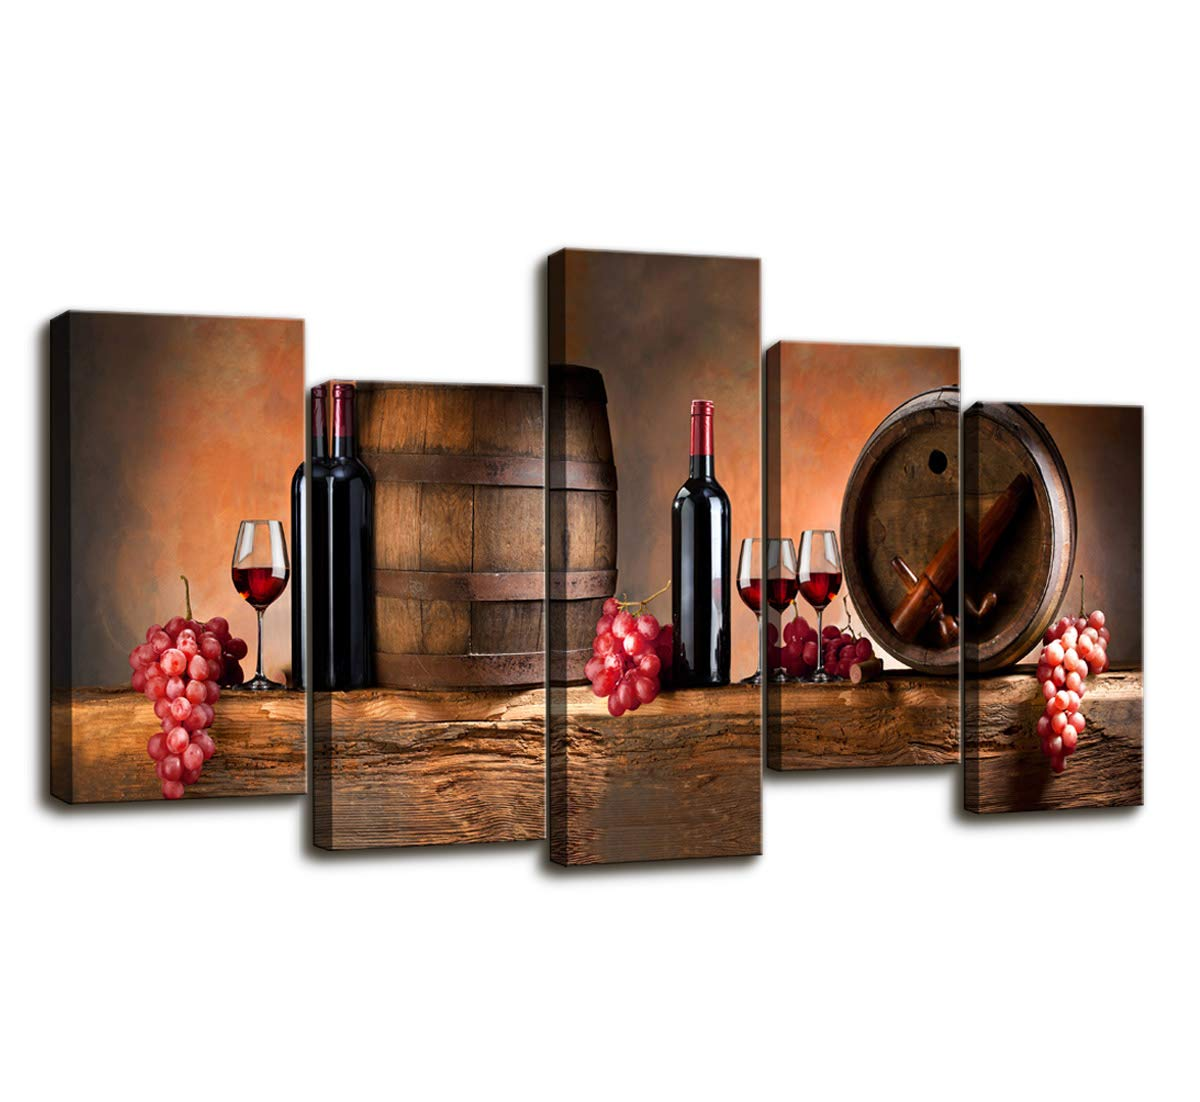 Cao Gen Decor Art-PSRP12826 Panels Wall Art Fruit Grape Red Wine Glass Painting on Canvas Stretched and Framed Canvas Paintings Ready to Hang for Home Decorations Wall Decor